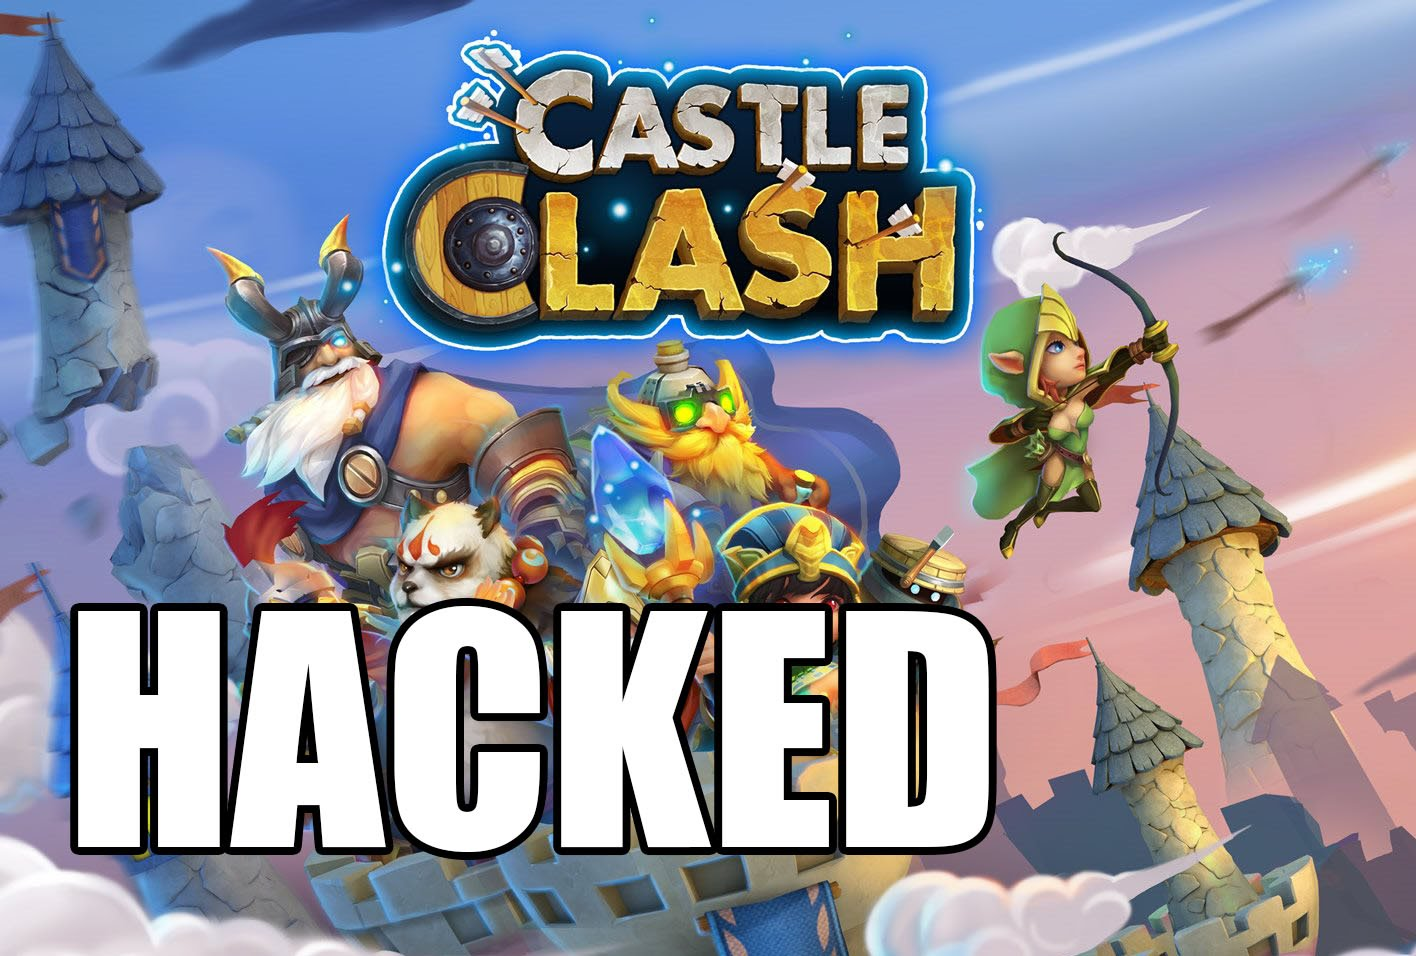 FROM VISITSTREAMER.COM CASTLECLASH CASTLE CLASH | GET Gems and Golds FOR UNLIMITED RESOURCES